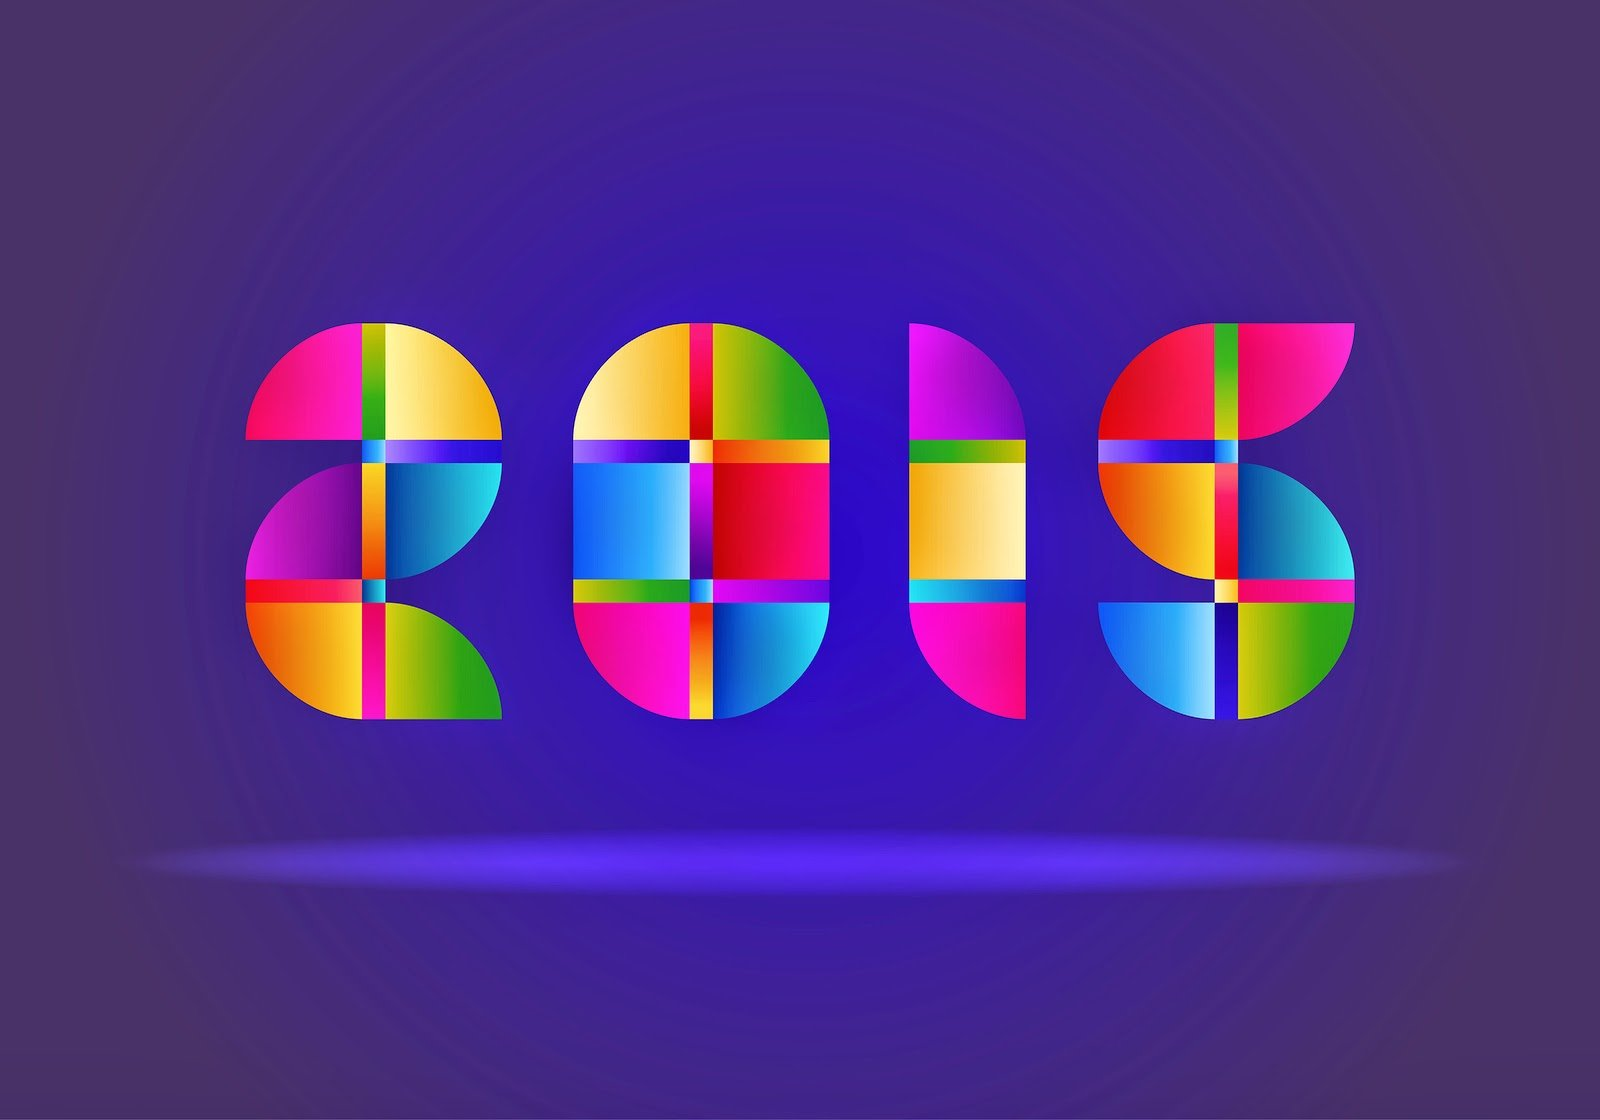 20 Best Colorful Happy New Year Wallpapers 2015 Smash Blog Trends 1600x1120